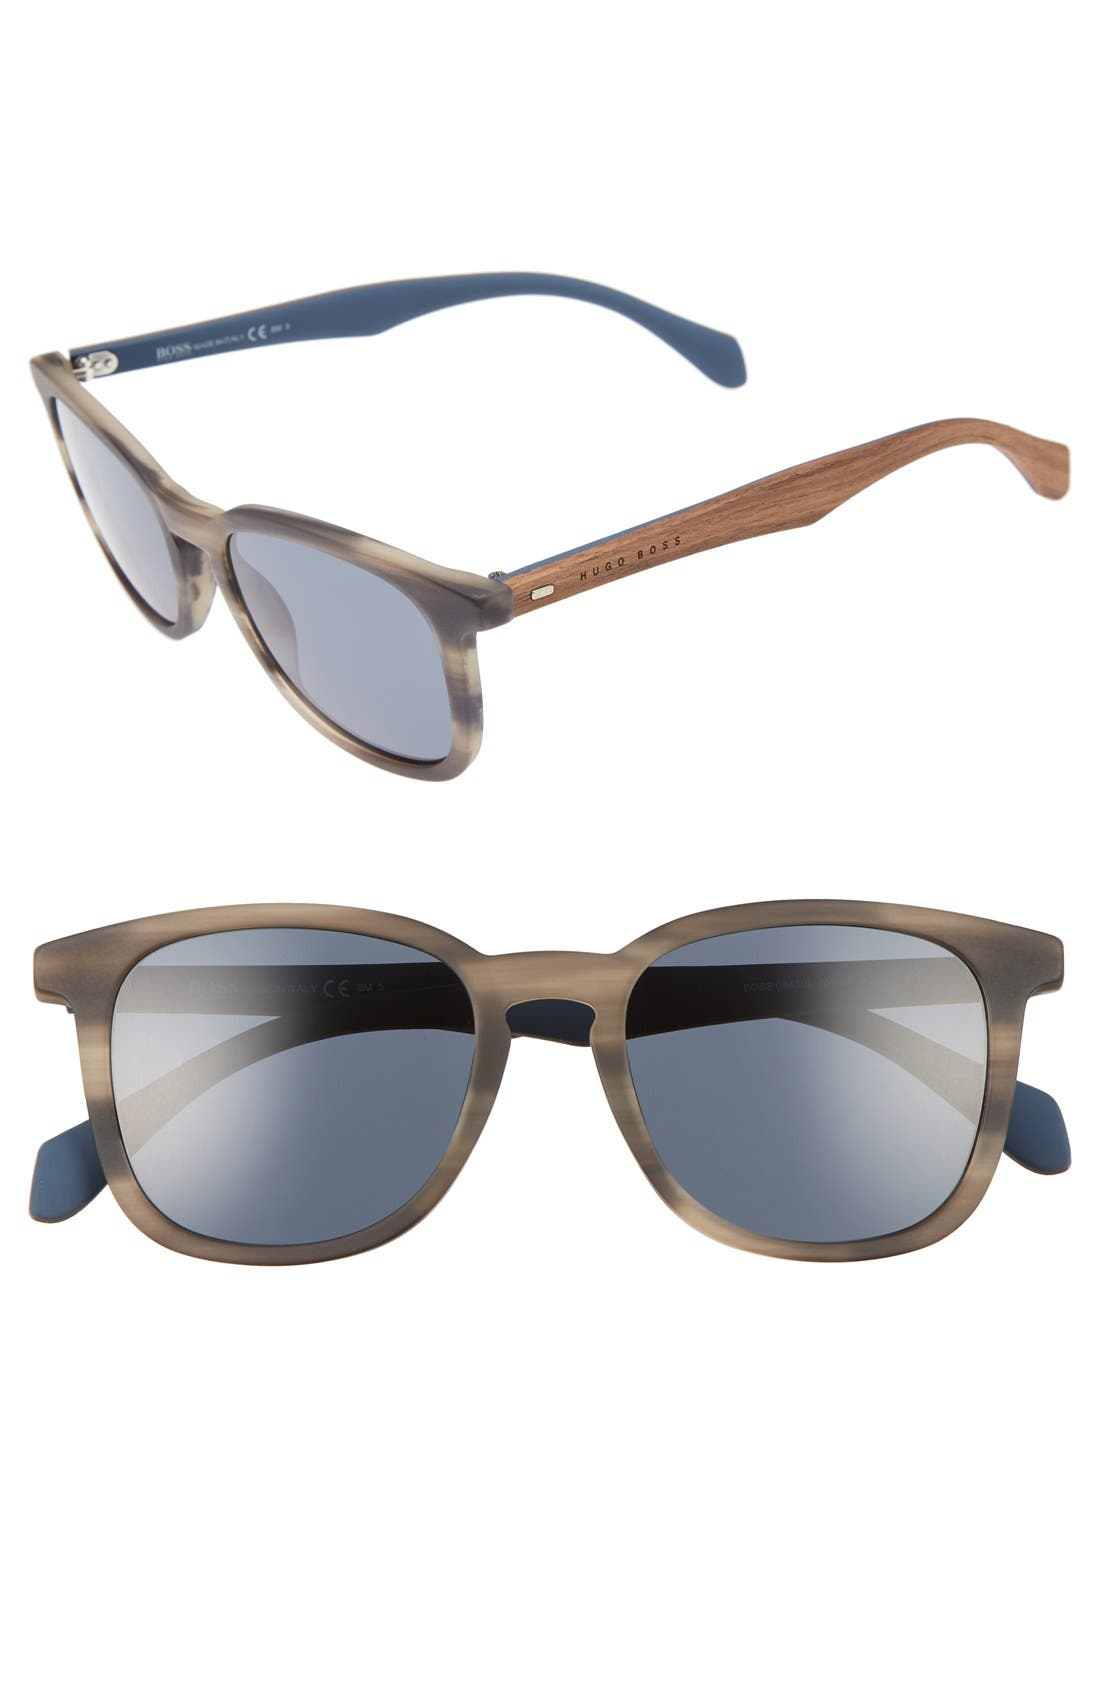 843/S 52mm Sunglasses,                         Main,                         color, Horn Brown/ Blue